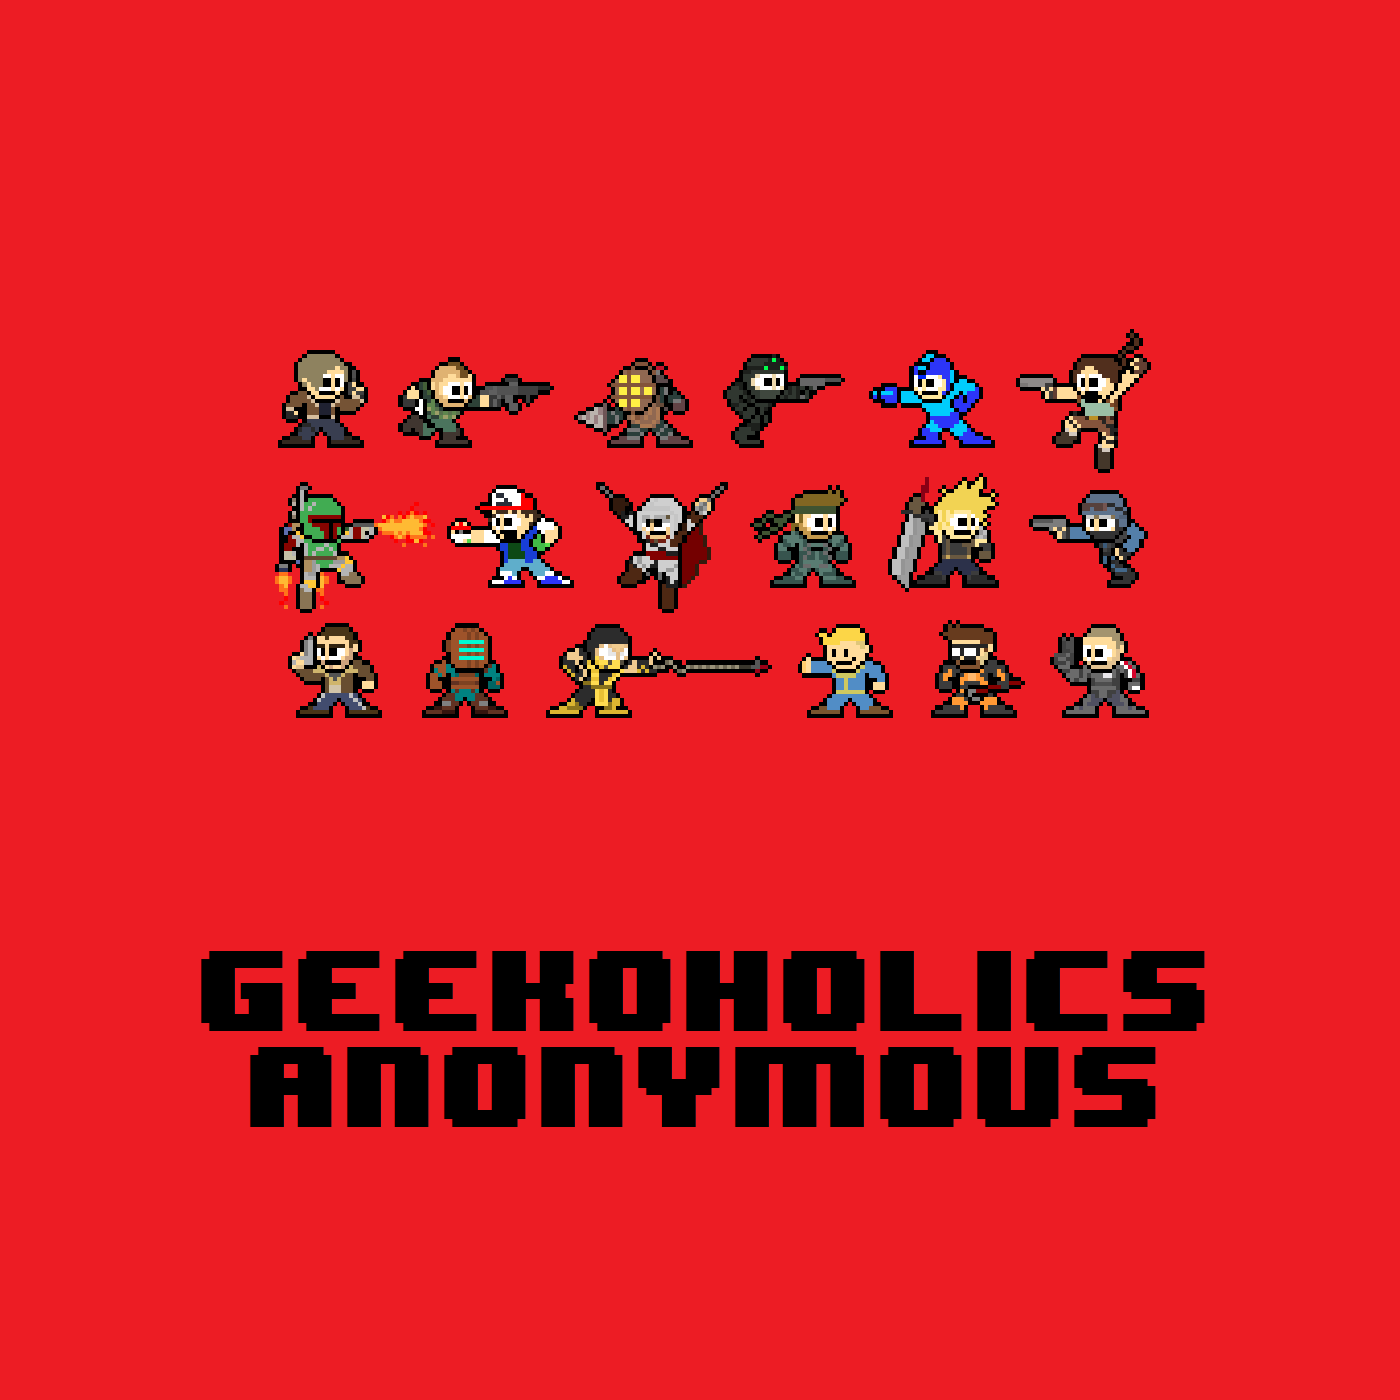 Axiom Verge 2, Hades, Pokémon Presents and more - Geekoholics Anonymous Podcast 319 show art